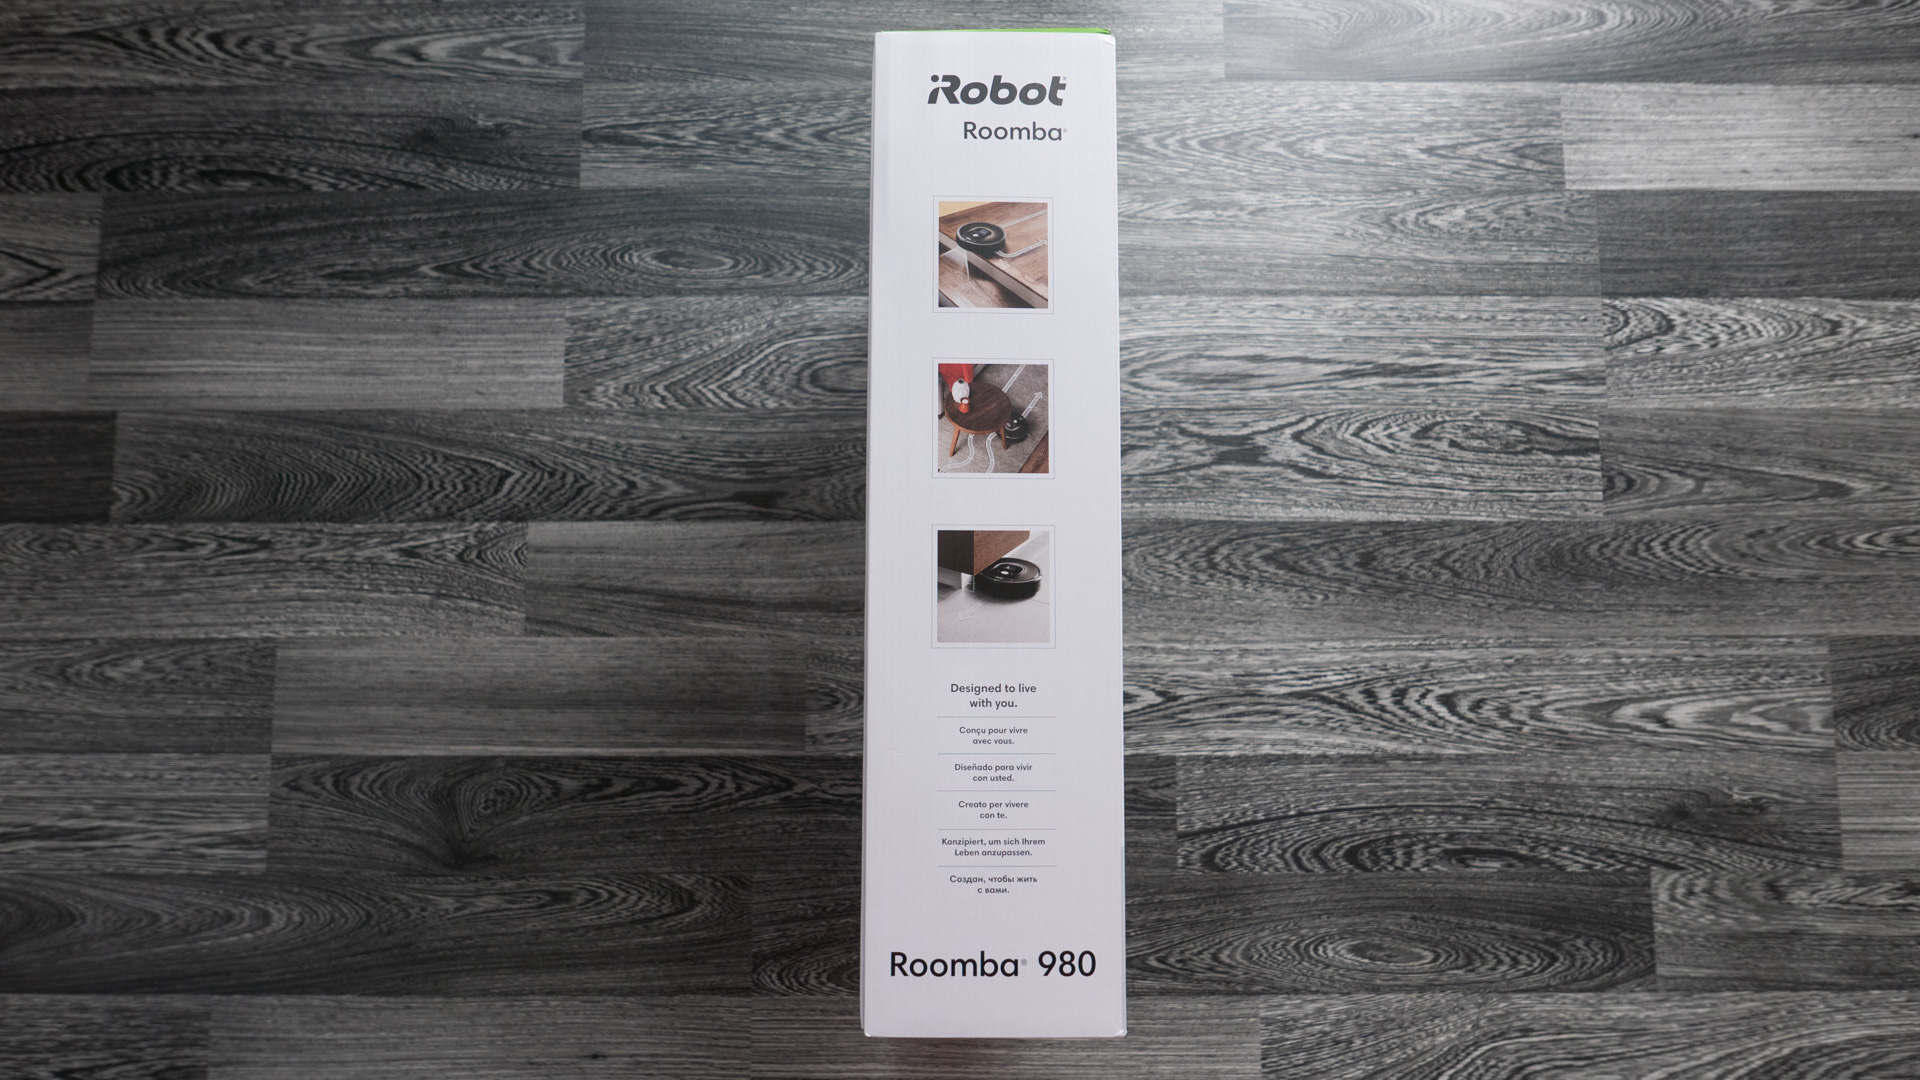 iRobot Roomba 980 Unboxing 04